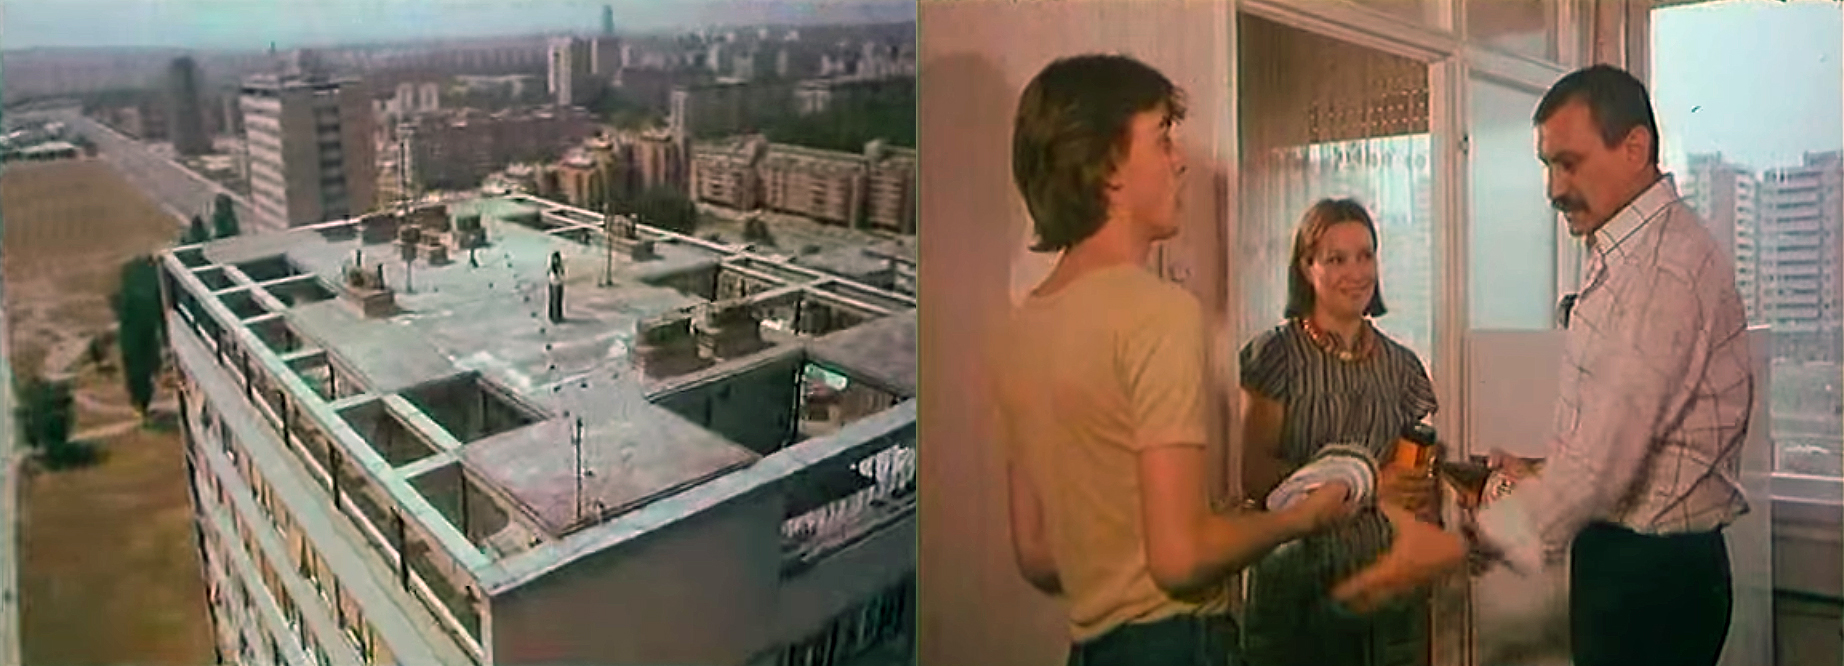 Fig 7: screenshots from the film Lude godine, 1977.